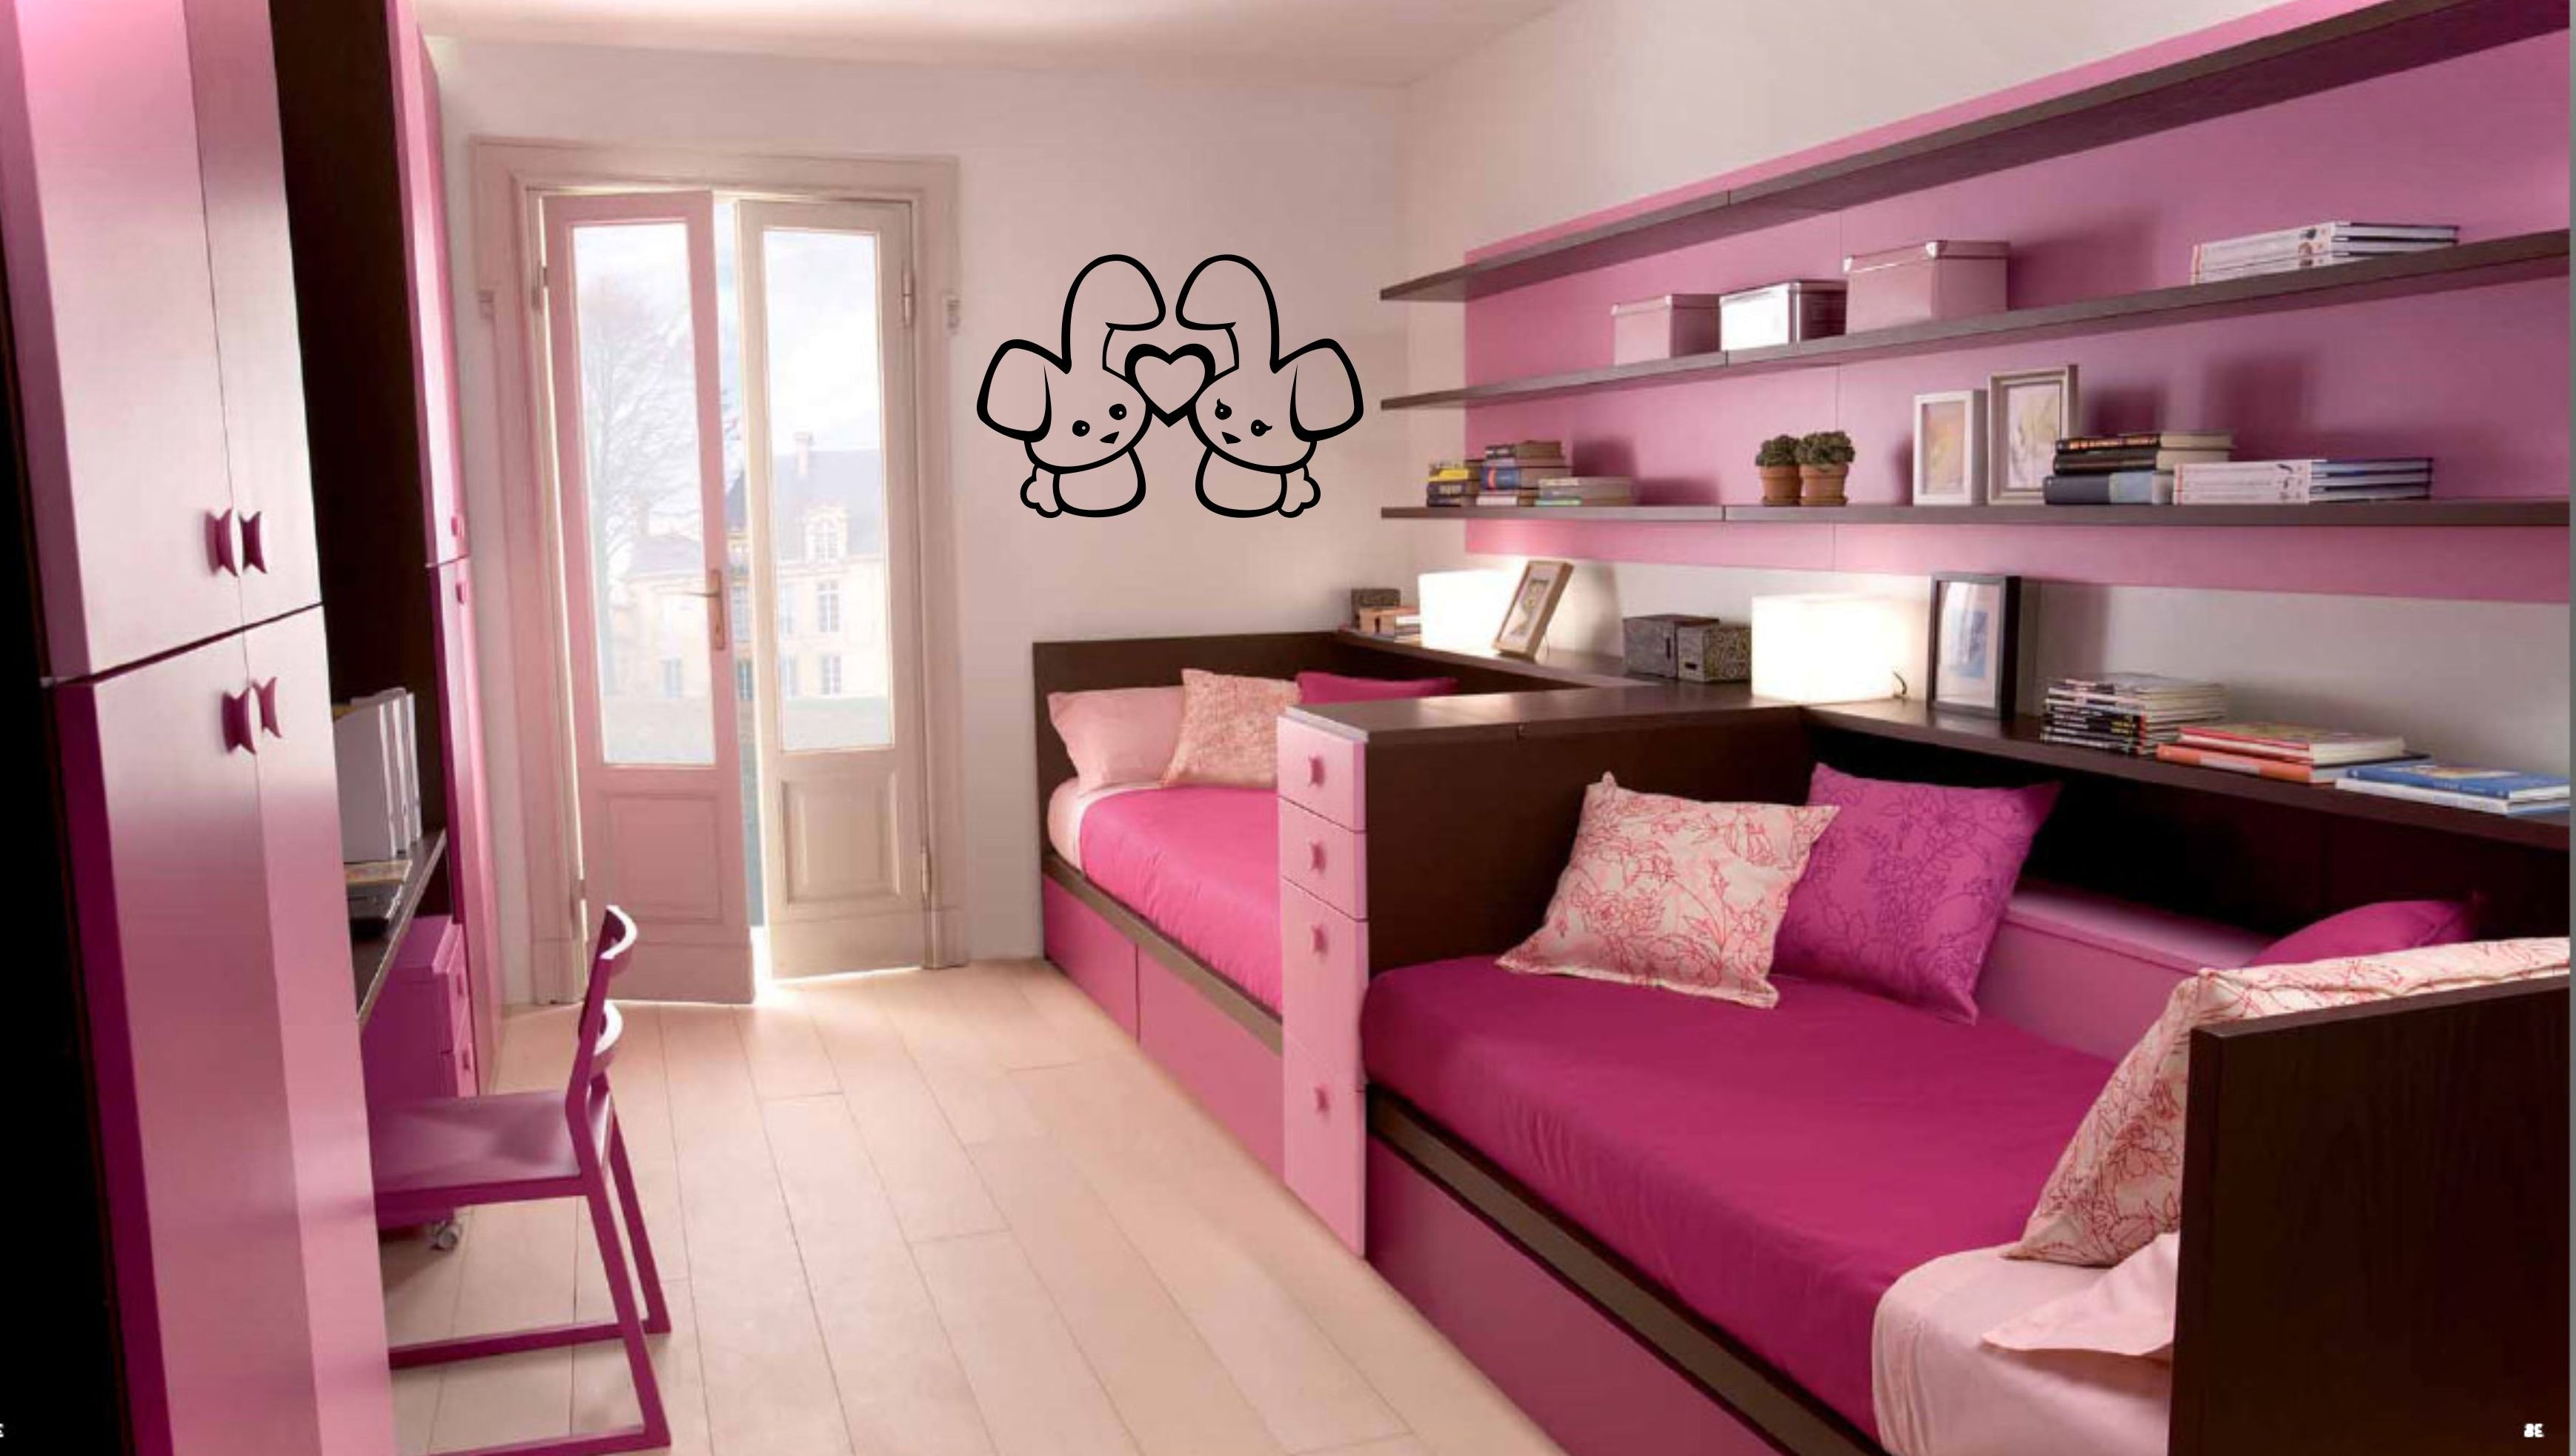 Most Beautifull Deco Paint Complete Bed Set: Tween Bedroom Ideas And Tips You Have To Try Immediately